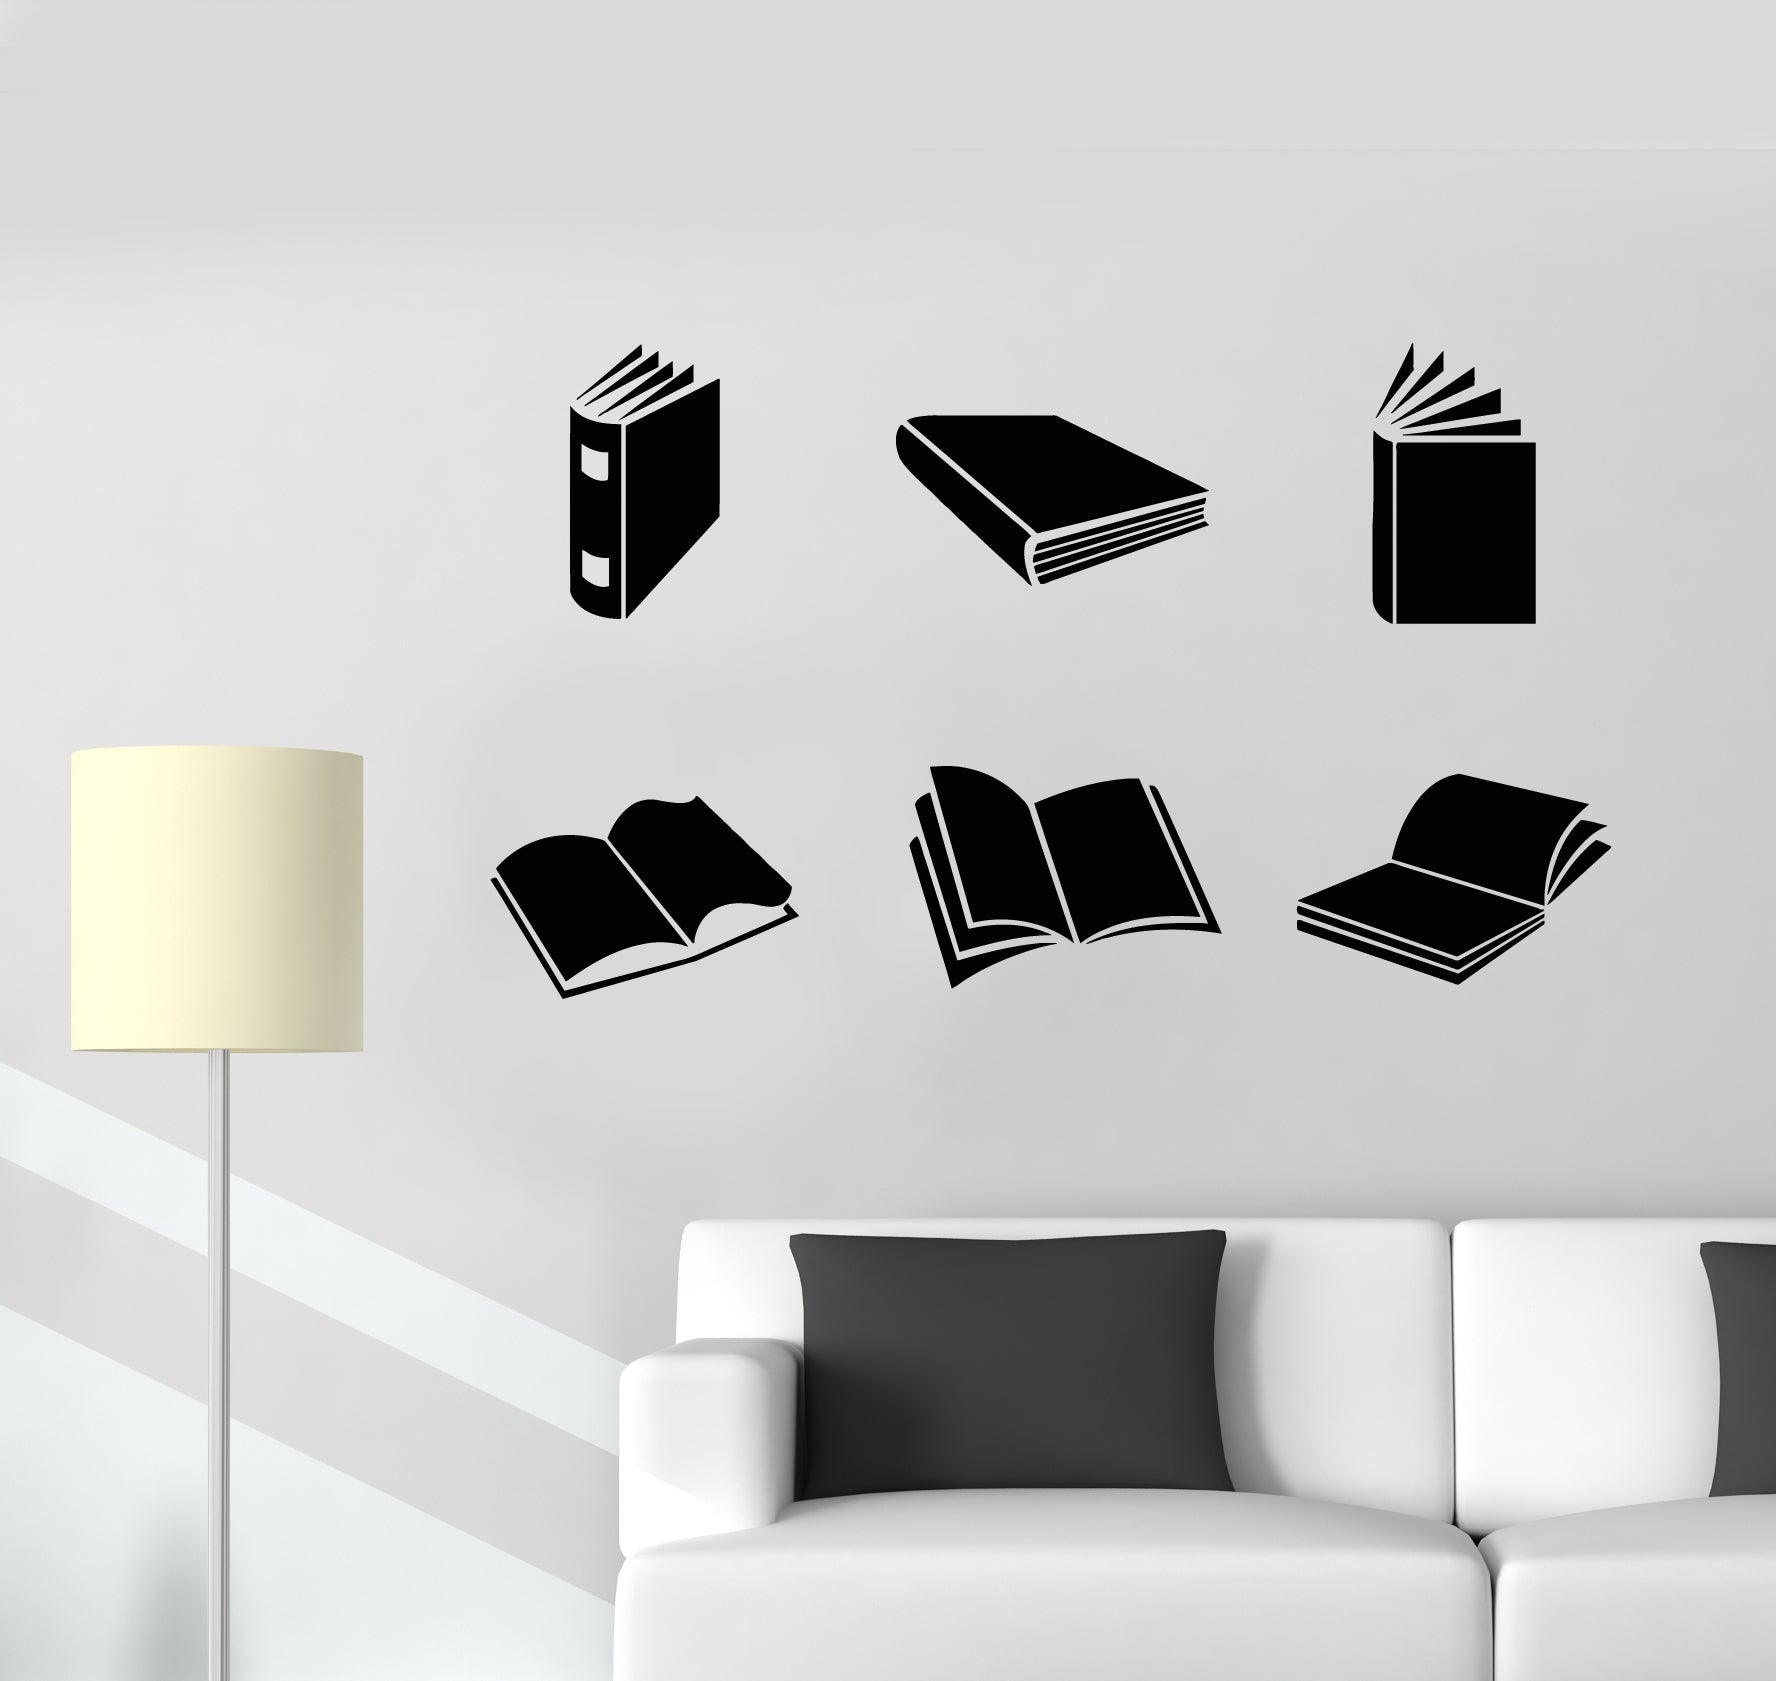 Details about Vinyl Wall Decal Reading Room Open Book Shop Store ...